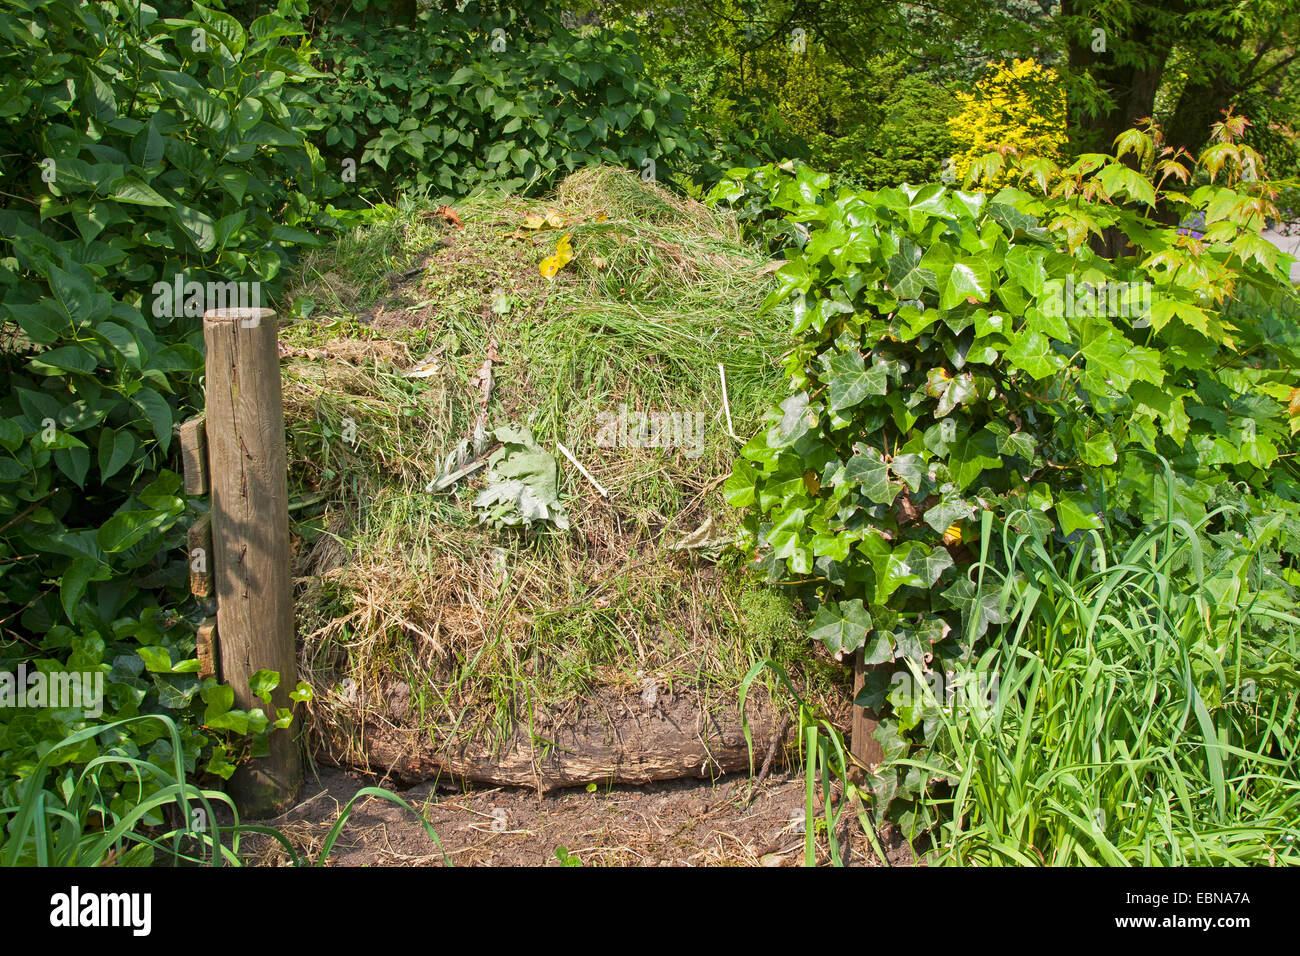 compost heap, Germany - Stock Image